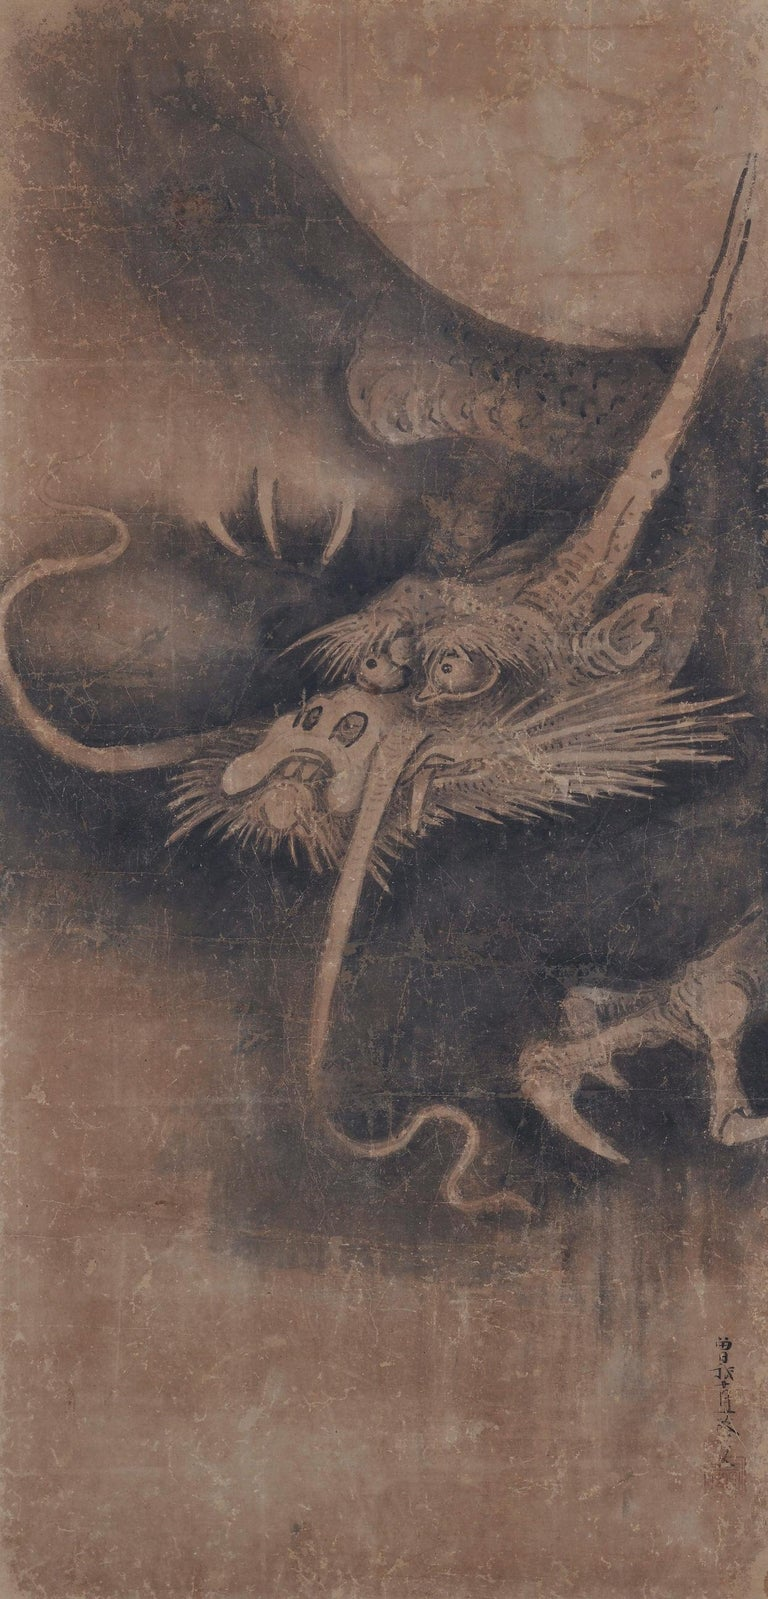 Edo Japanese Scroll Painting, 17th Century Tiger & Dragon Pair by Soga Nichokuan For Sale